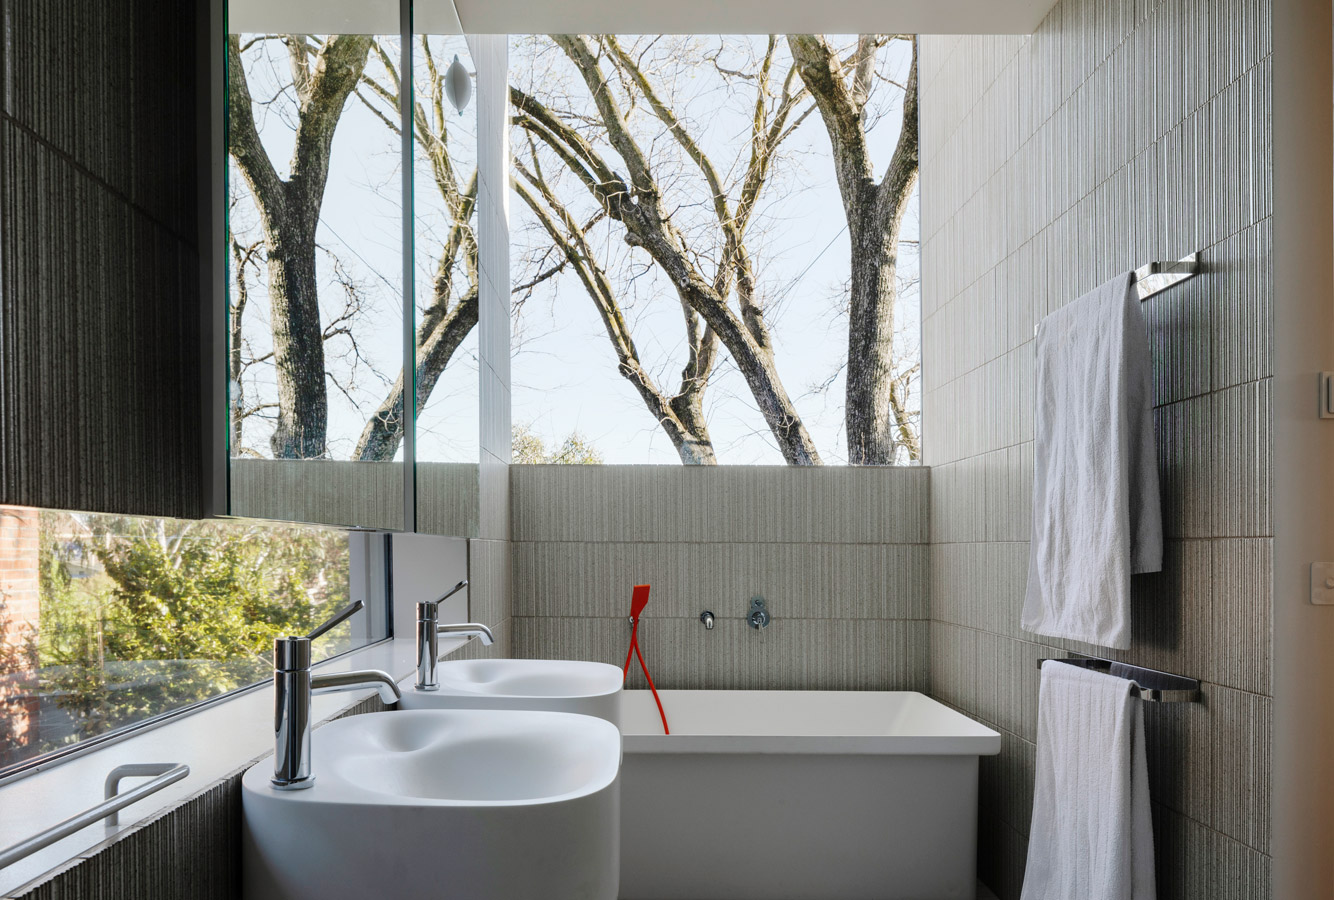 Kew Residence, John Wardle, Overend Constructions, tiled bathroom, architectural, design, joinery